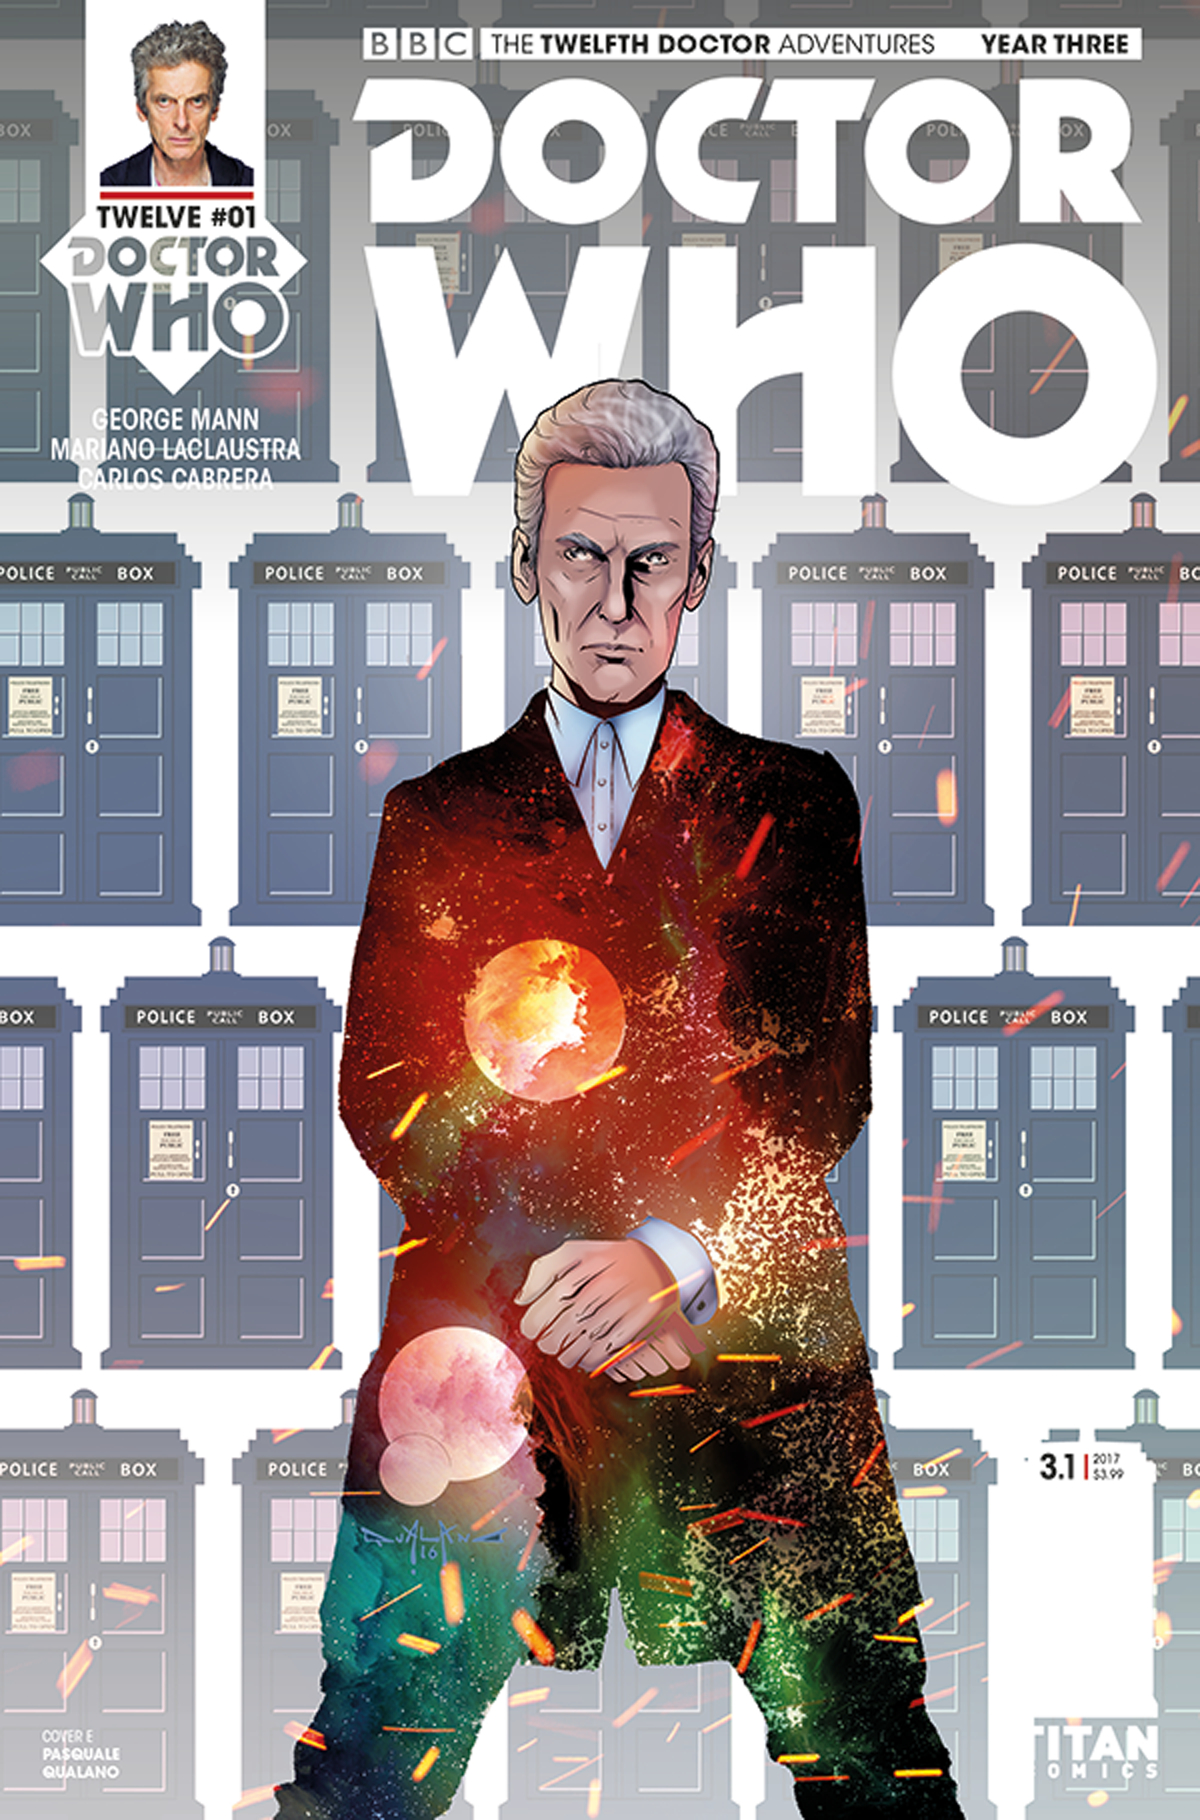 DOCTOR WHO 12TH YEAR THREE #1 CVR F QUALANO